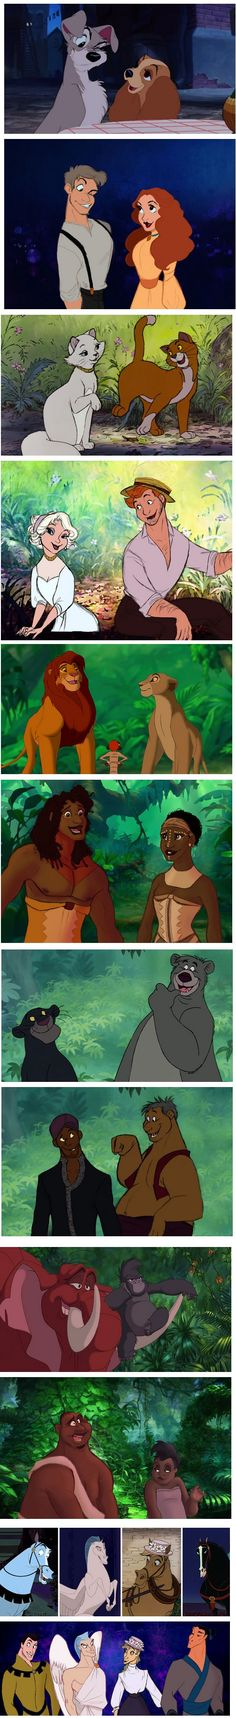 pinterest: @jaidyngrace Charming Disney animals as humans